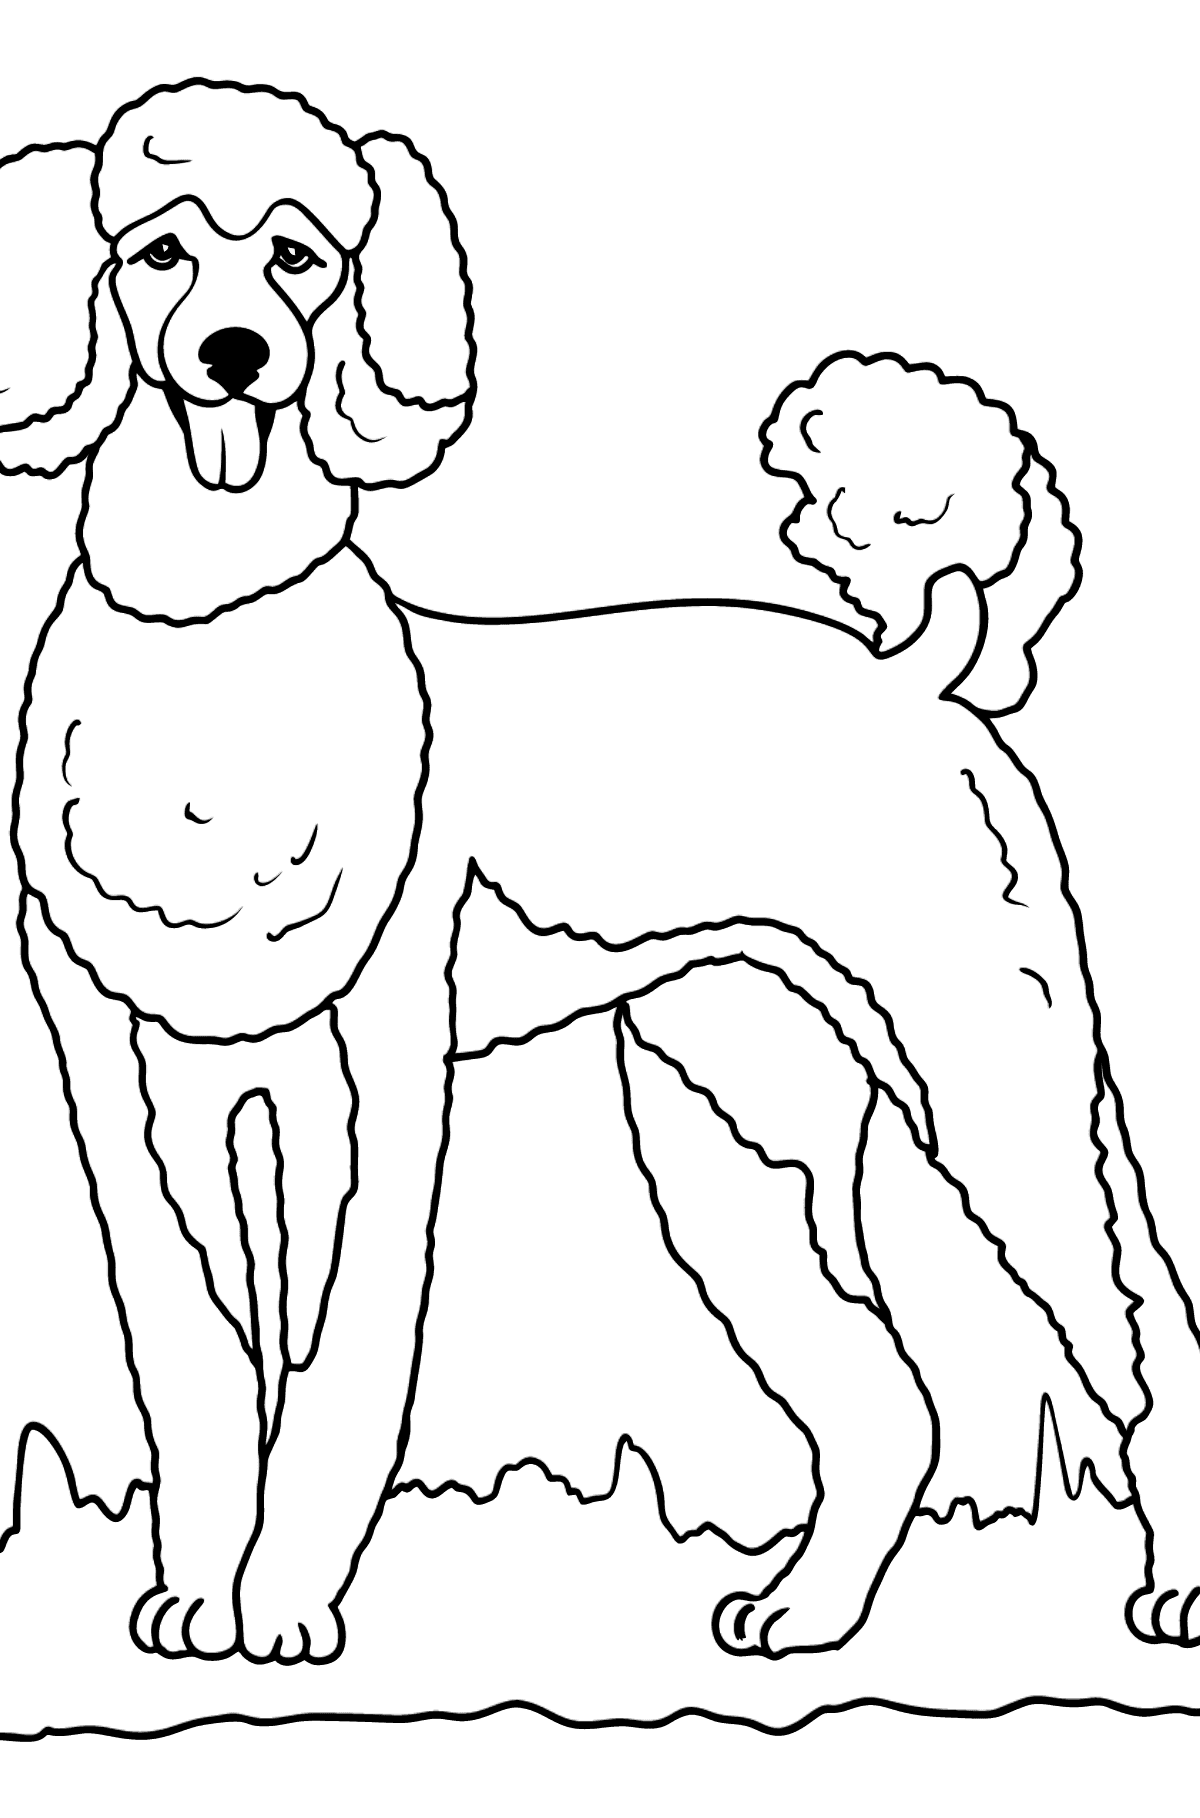 Poodle coloring page - Coloring Pages for Kids